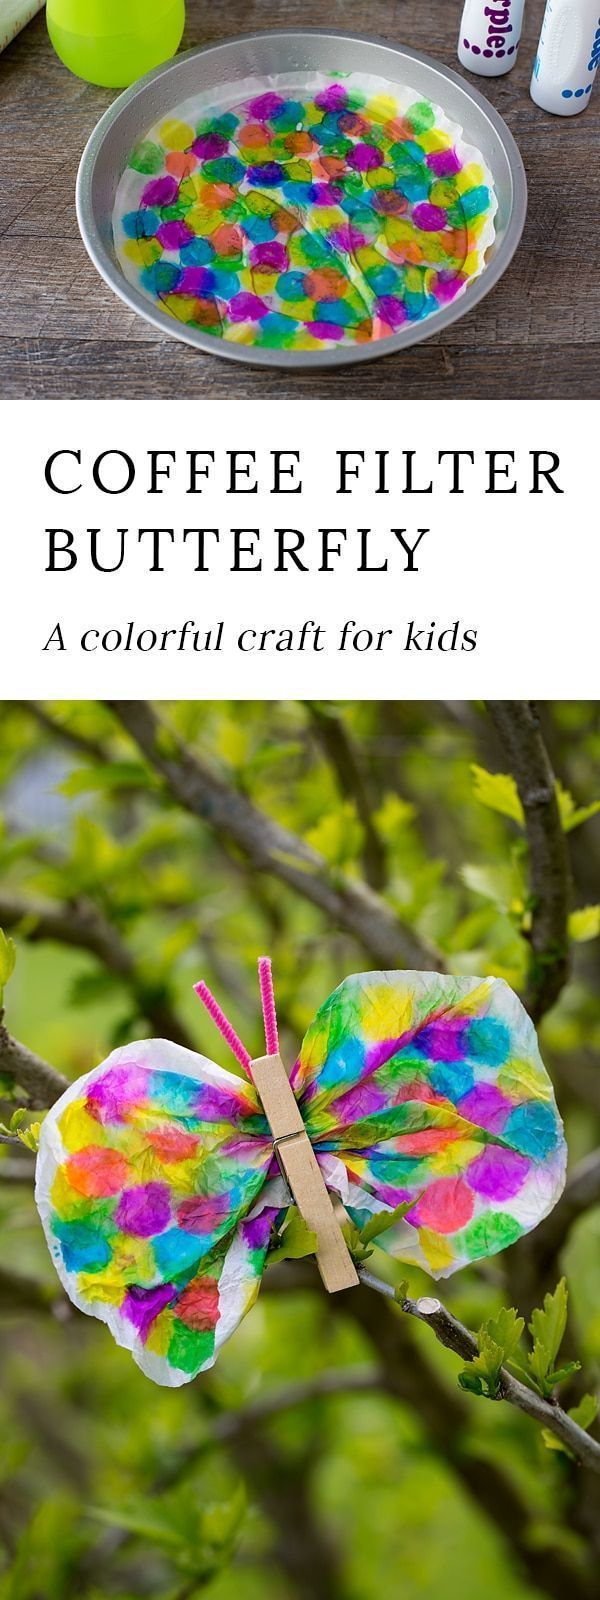 Coffee Filter Butterfly Craft for Kids | Butterfly crafts ...